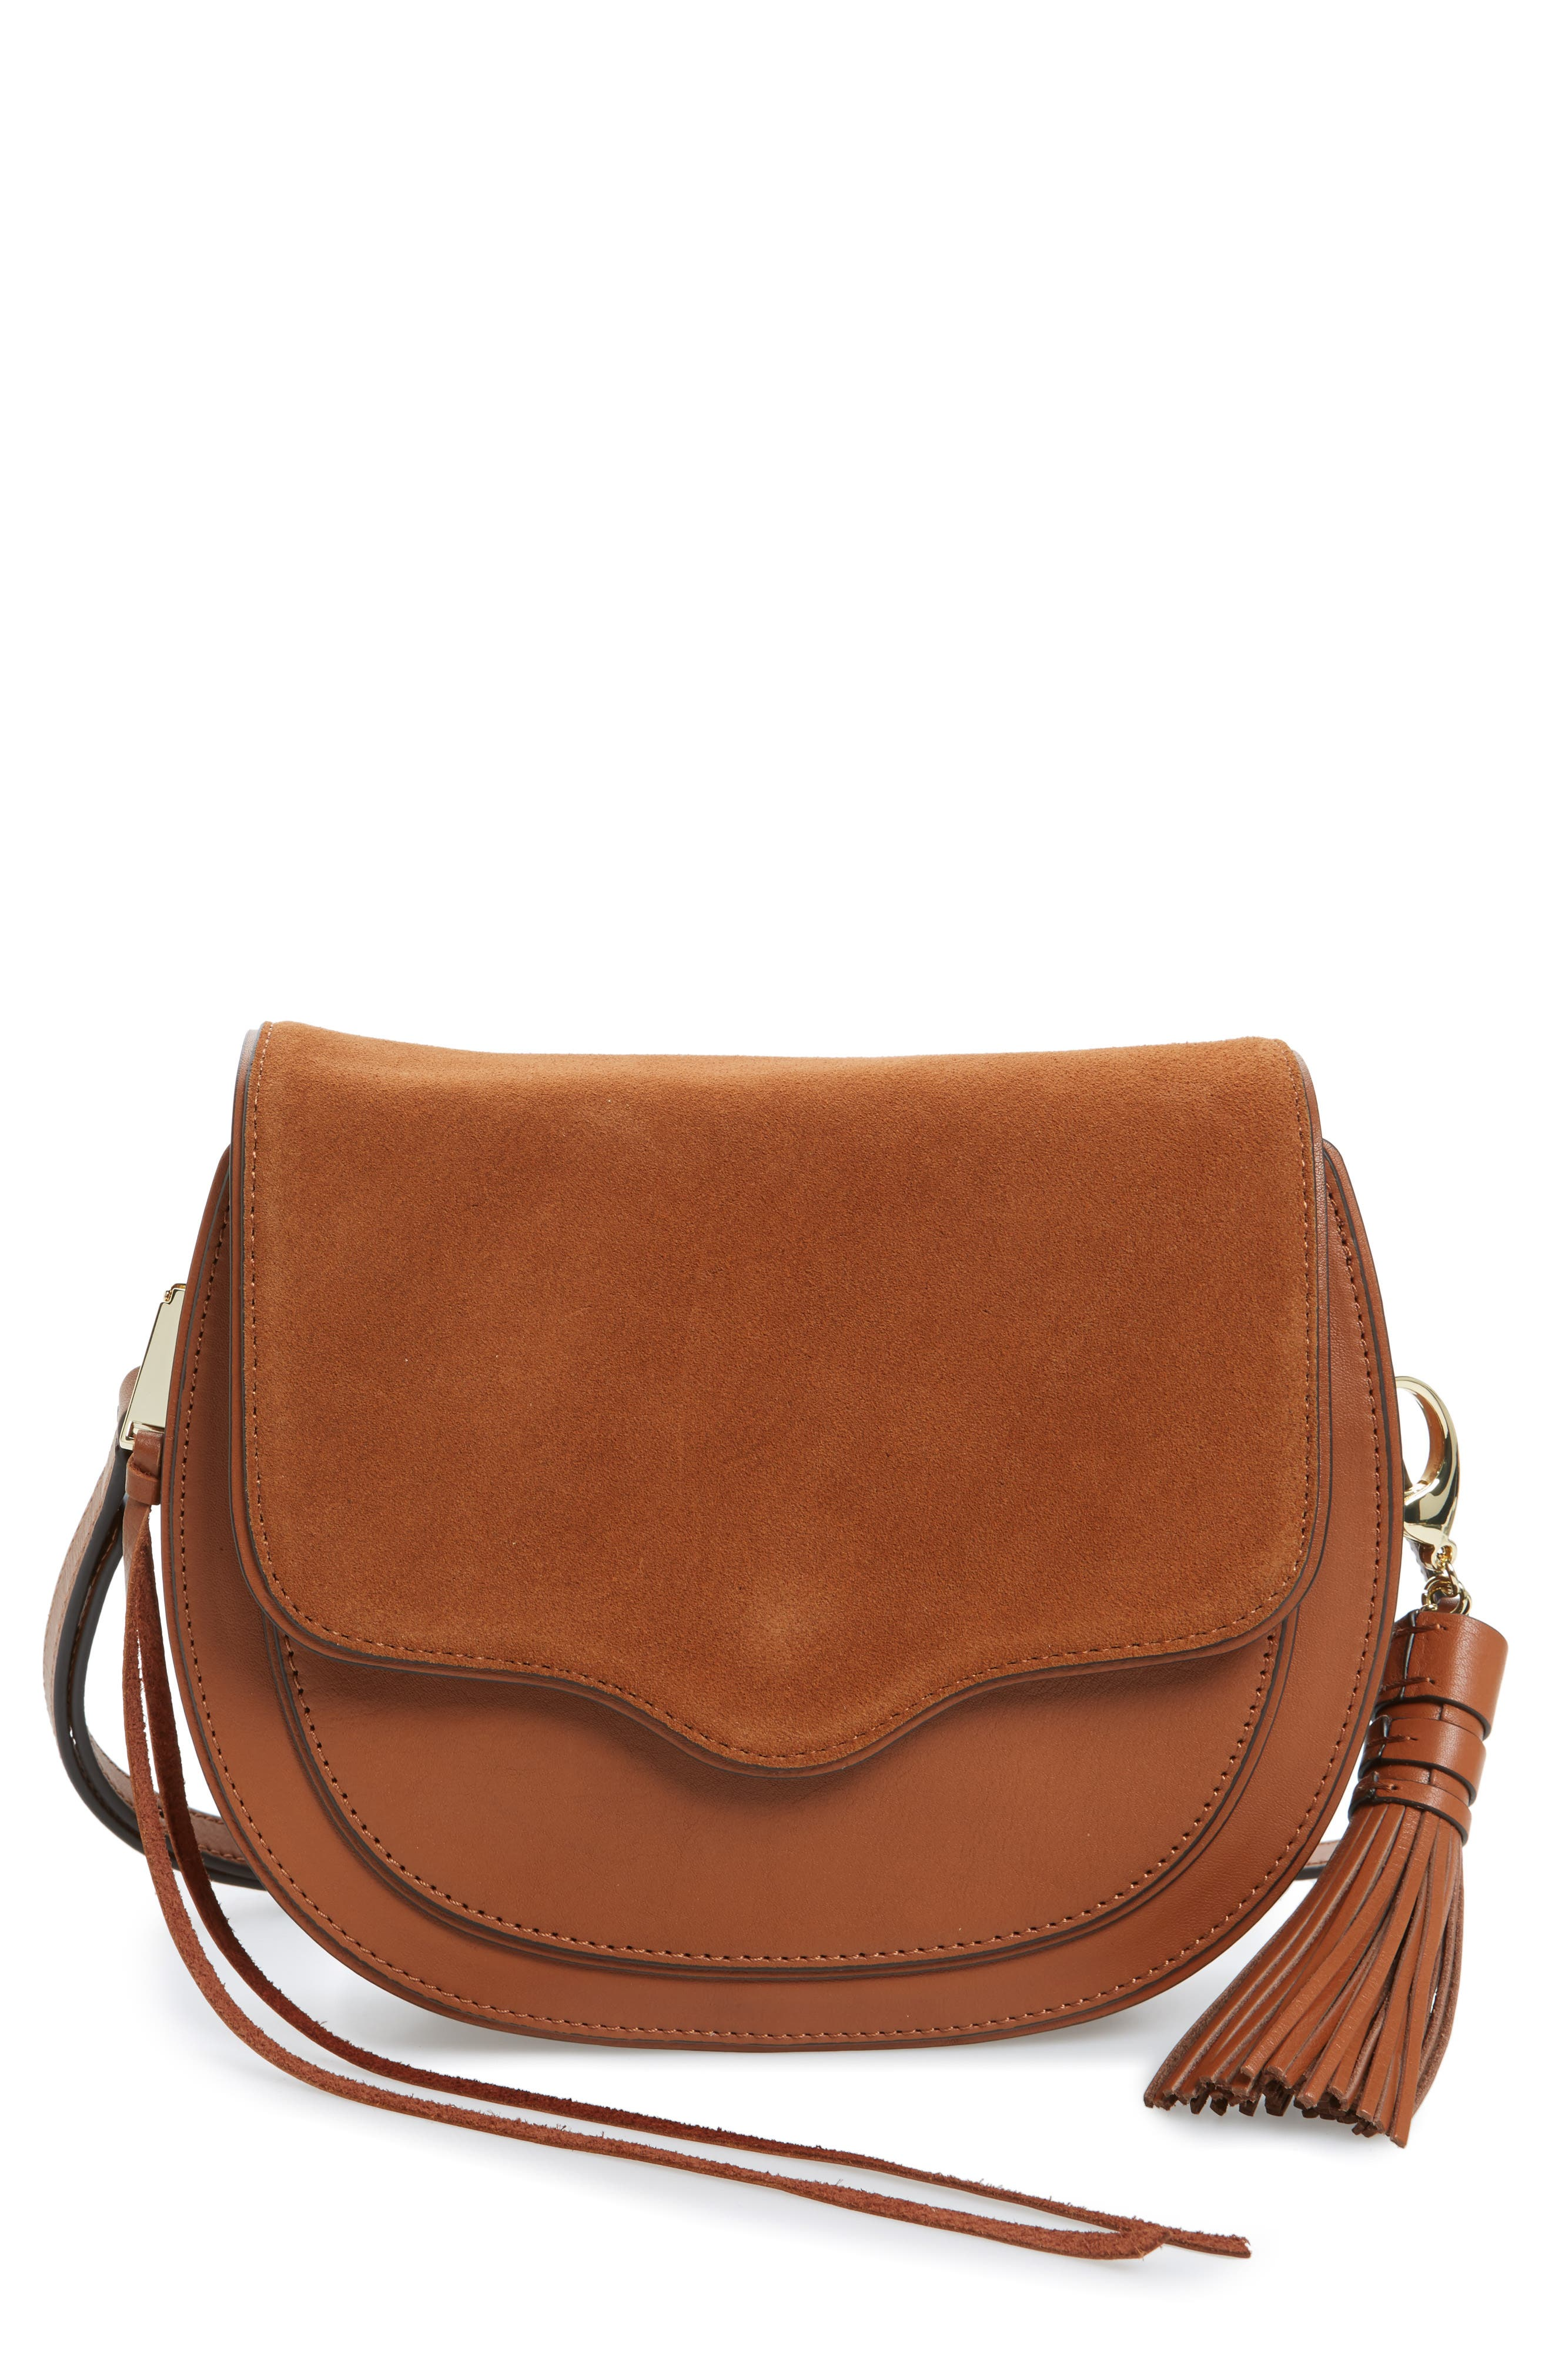 Rebecca Minkoff Large Suki Crossbody Bag